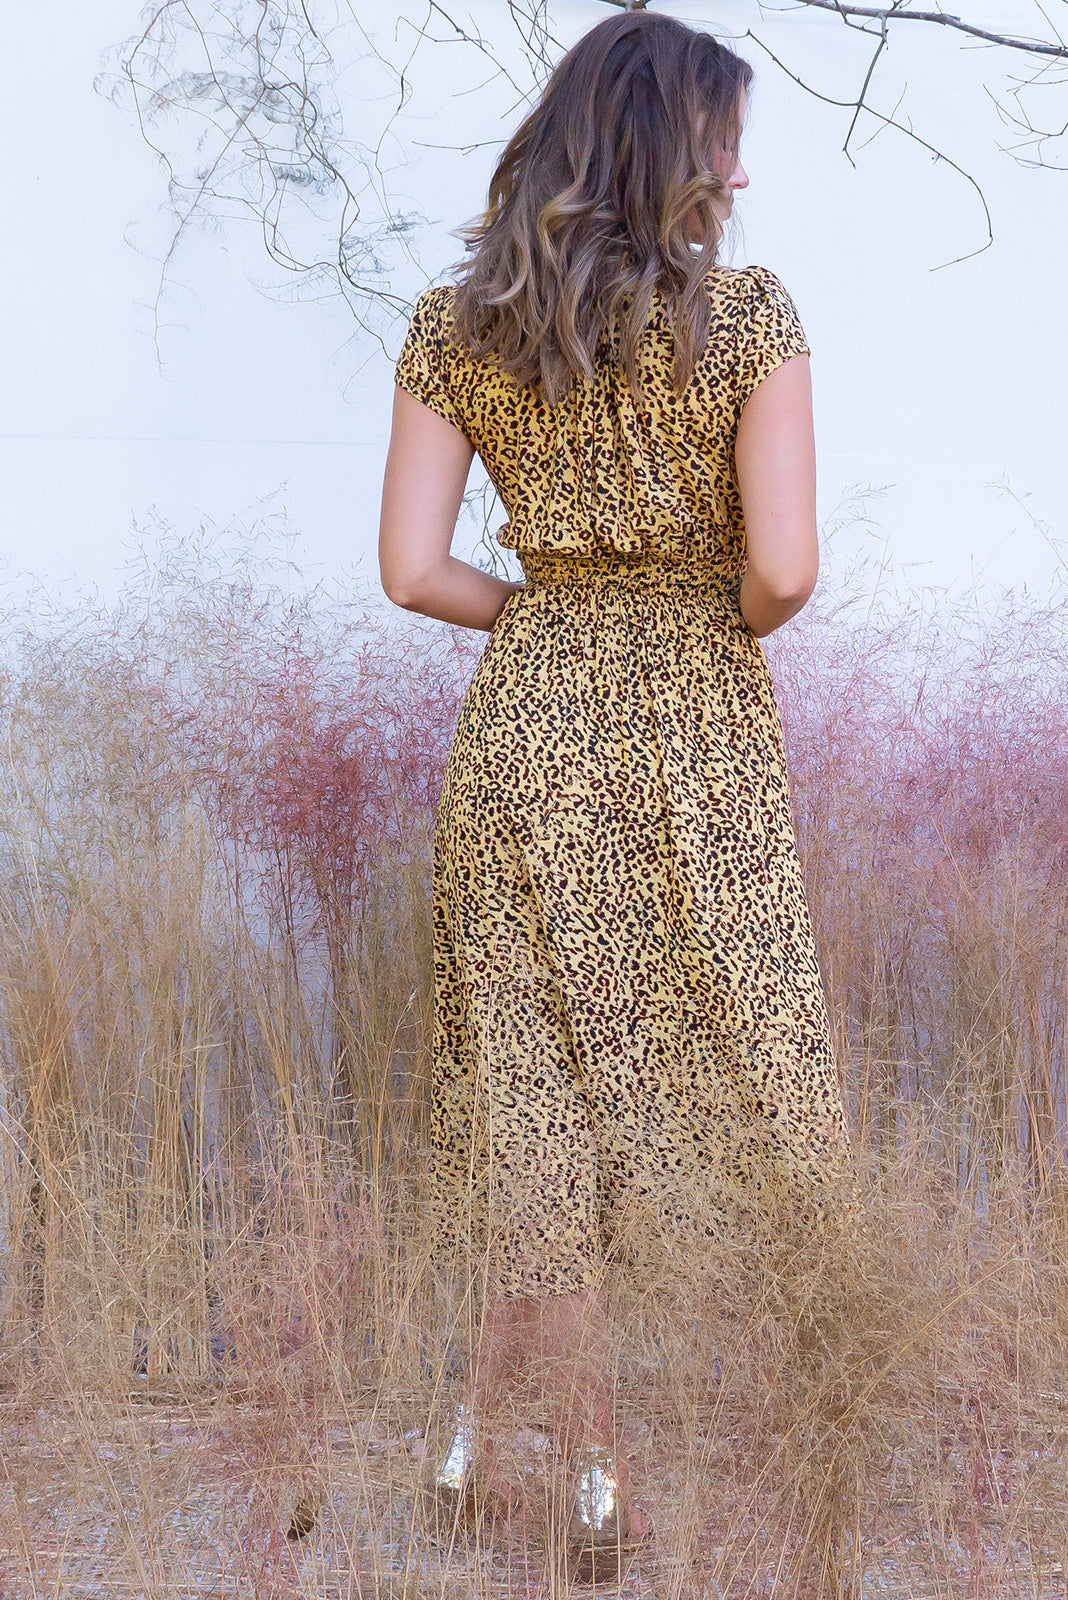 Lizzie Shona Golden Midi dress features a vintage inspired fitted basque waist and elasticated waist with a cap sleeve and deep v neck the fabric is a soft woven rayon in a soft yellow gold and brown tonal animal cheetah print